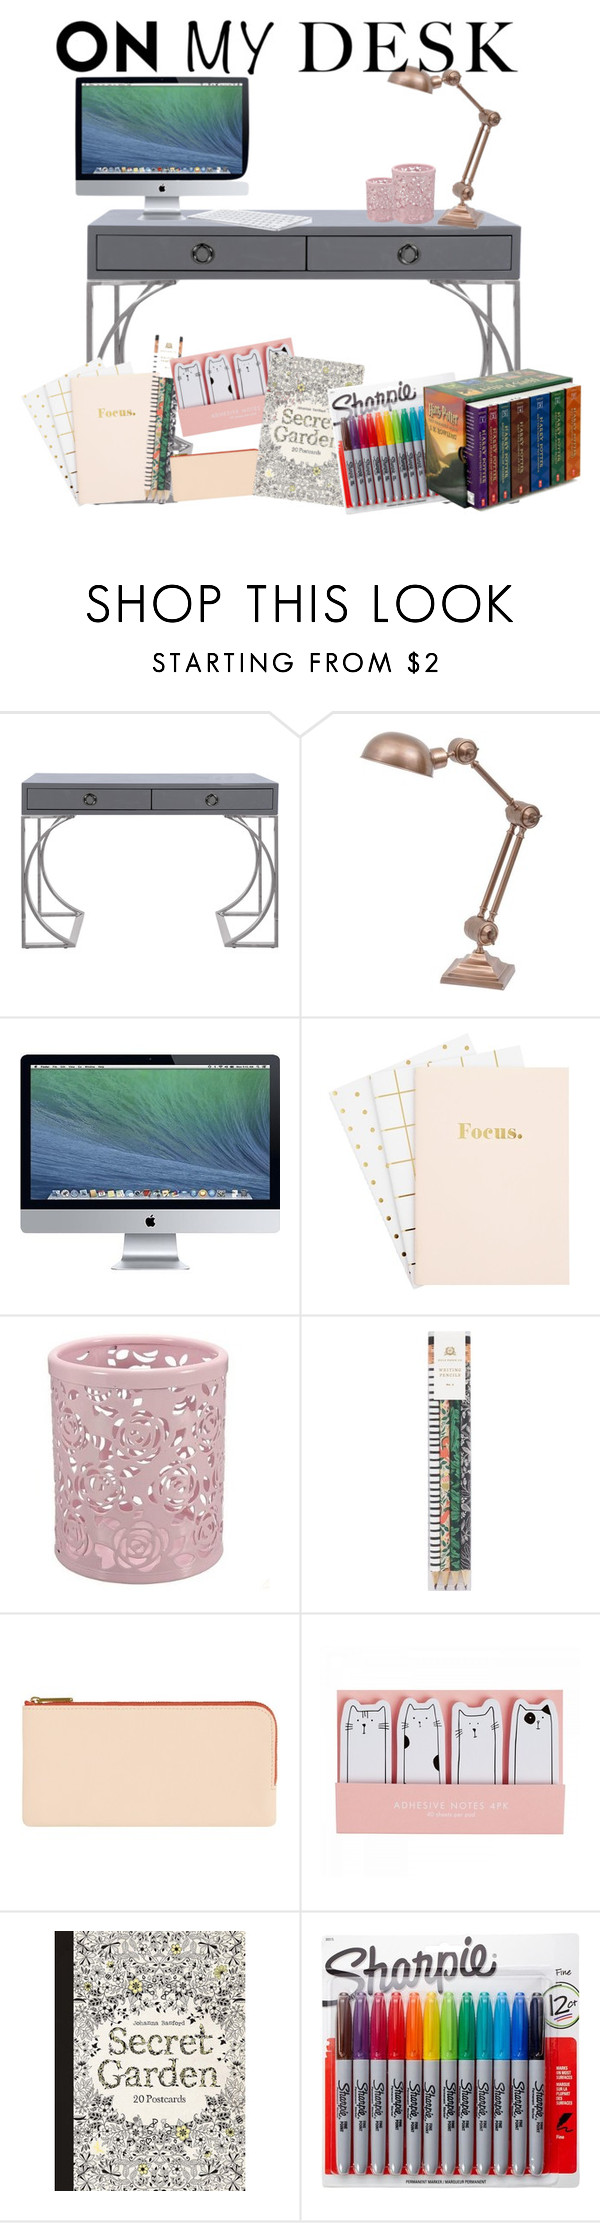 """What's on my desk?"" by itsfashioninfinity ❤ liked on Polyvore featuring interior, interiors, interior design, home, home decor, interior decorating, Worlds Away, Rifle Paper Co, Sharpie and onmydesk"